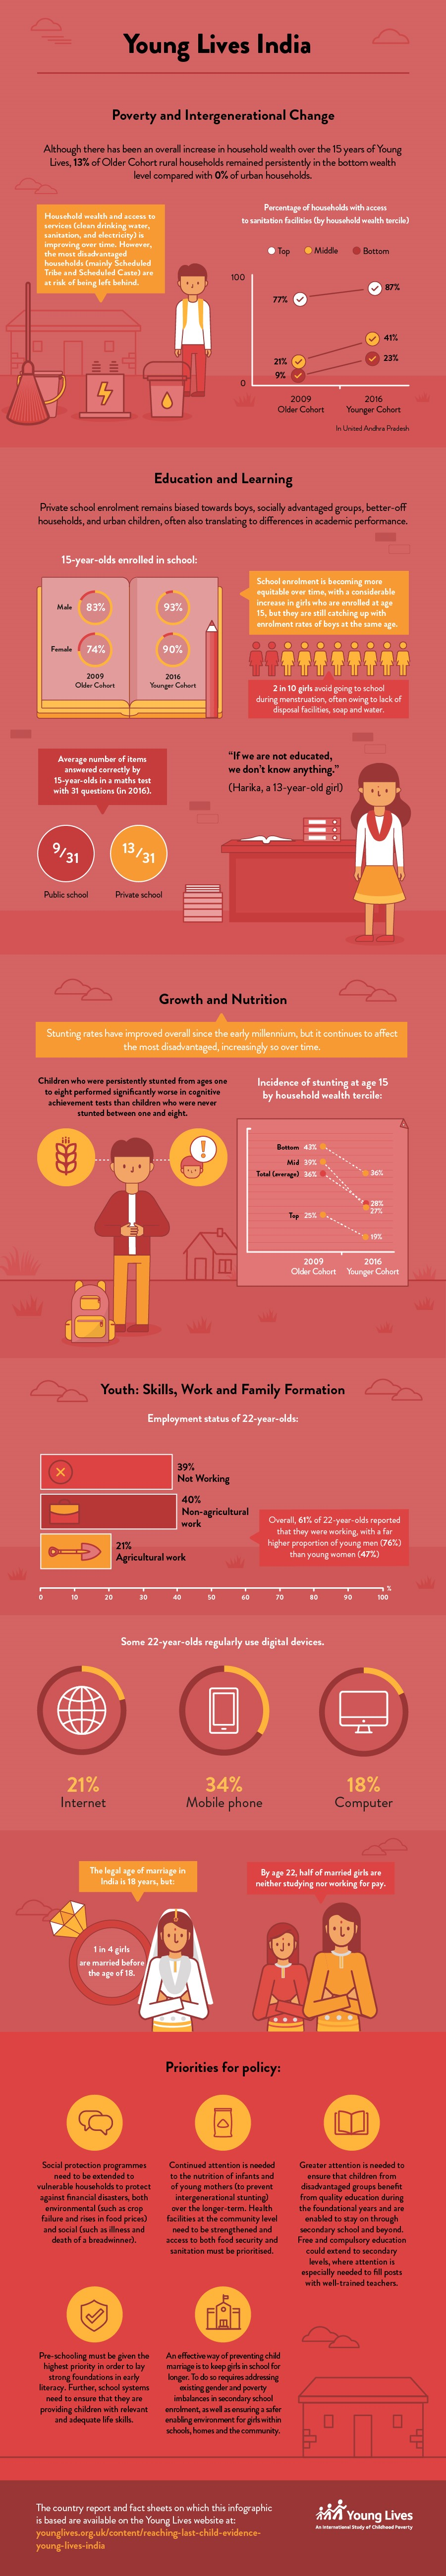 Young Lives India infographic